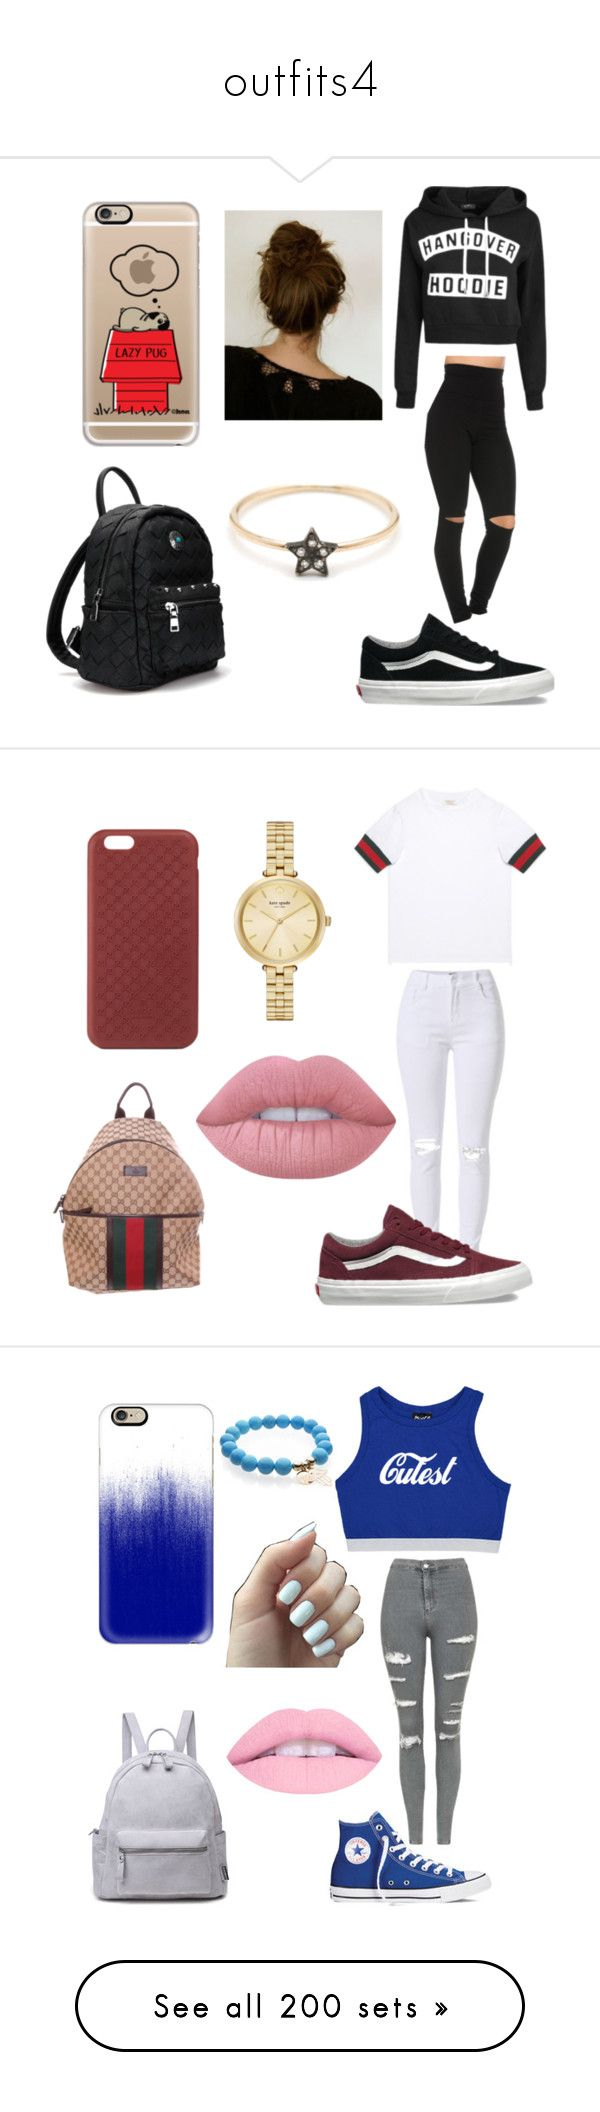 """outfits4"" by jeni-tomaskova ❤ liked on Polyvore featuring Vans, Casetify, Gucci, Kate Spade, Lime Crime, Topshop, Converse, Sans Souci, Majestic and Moschino"